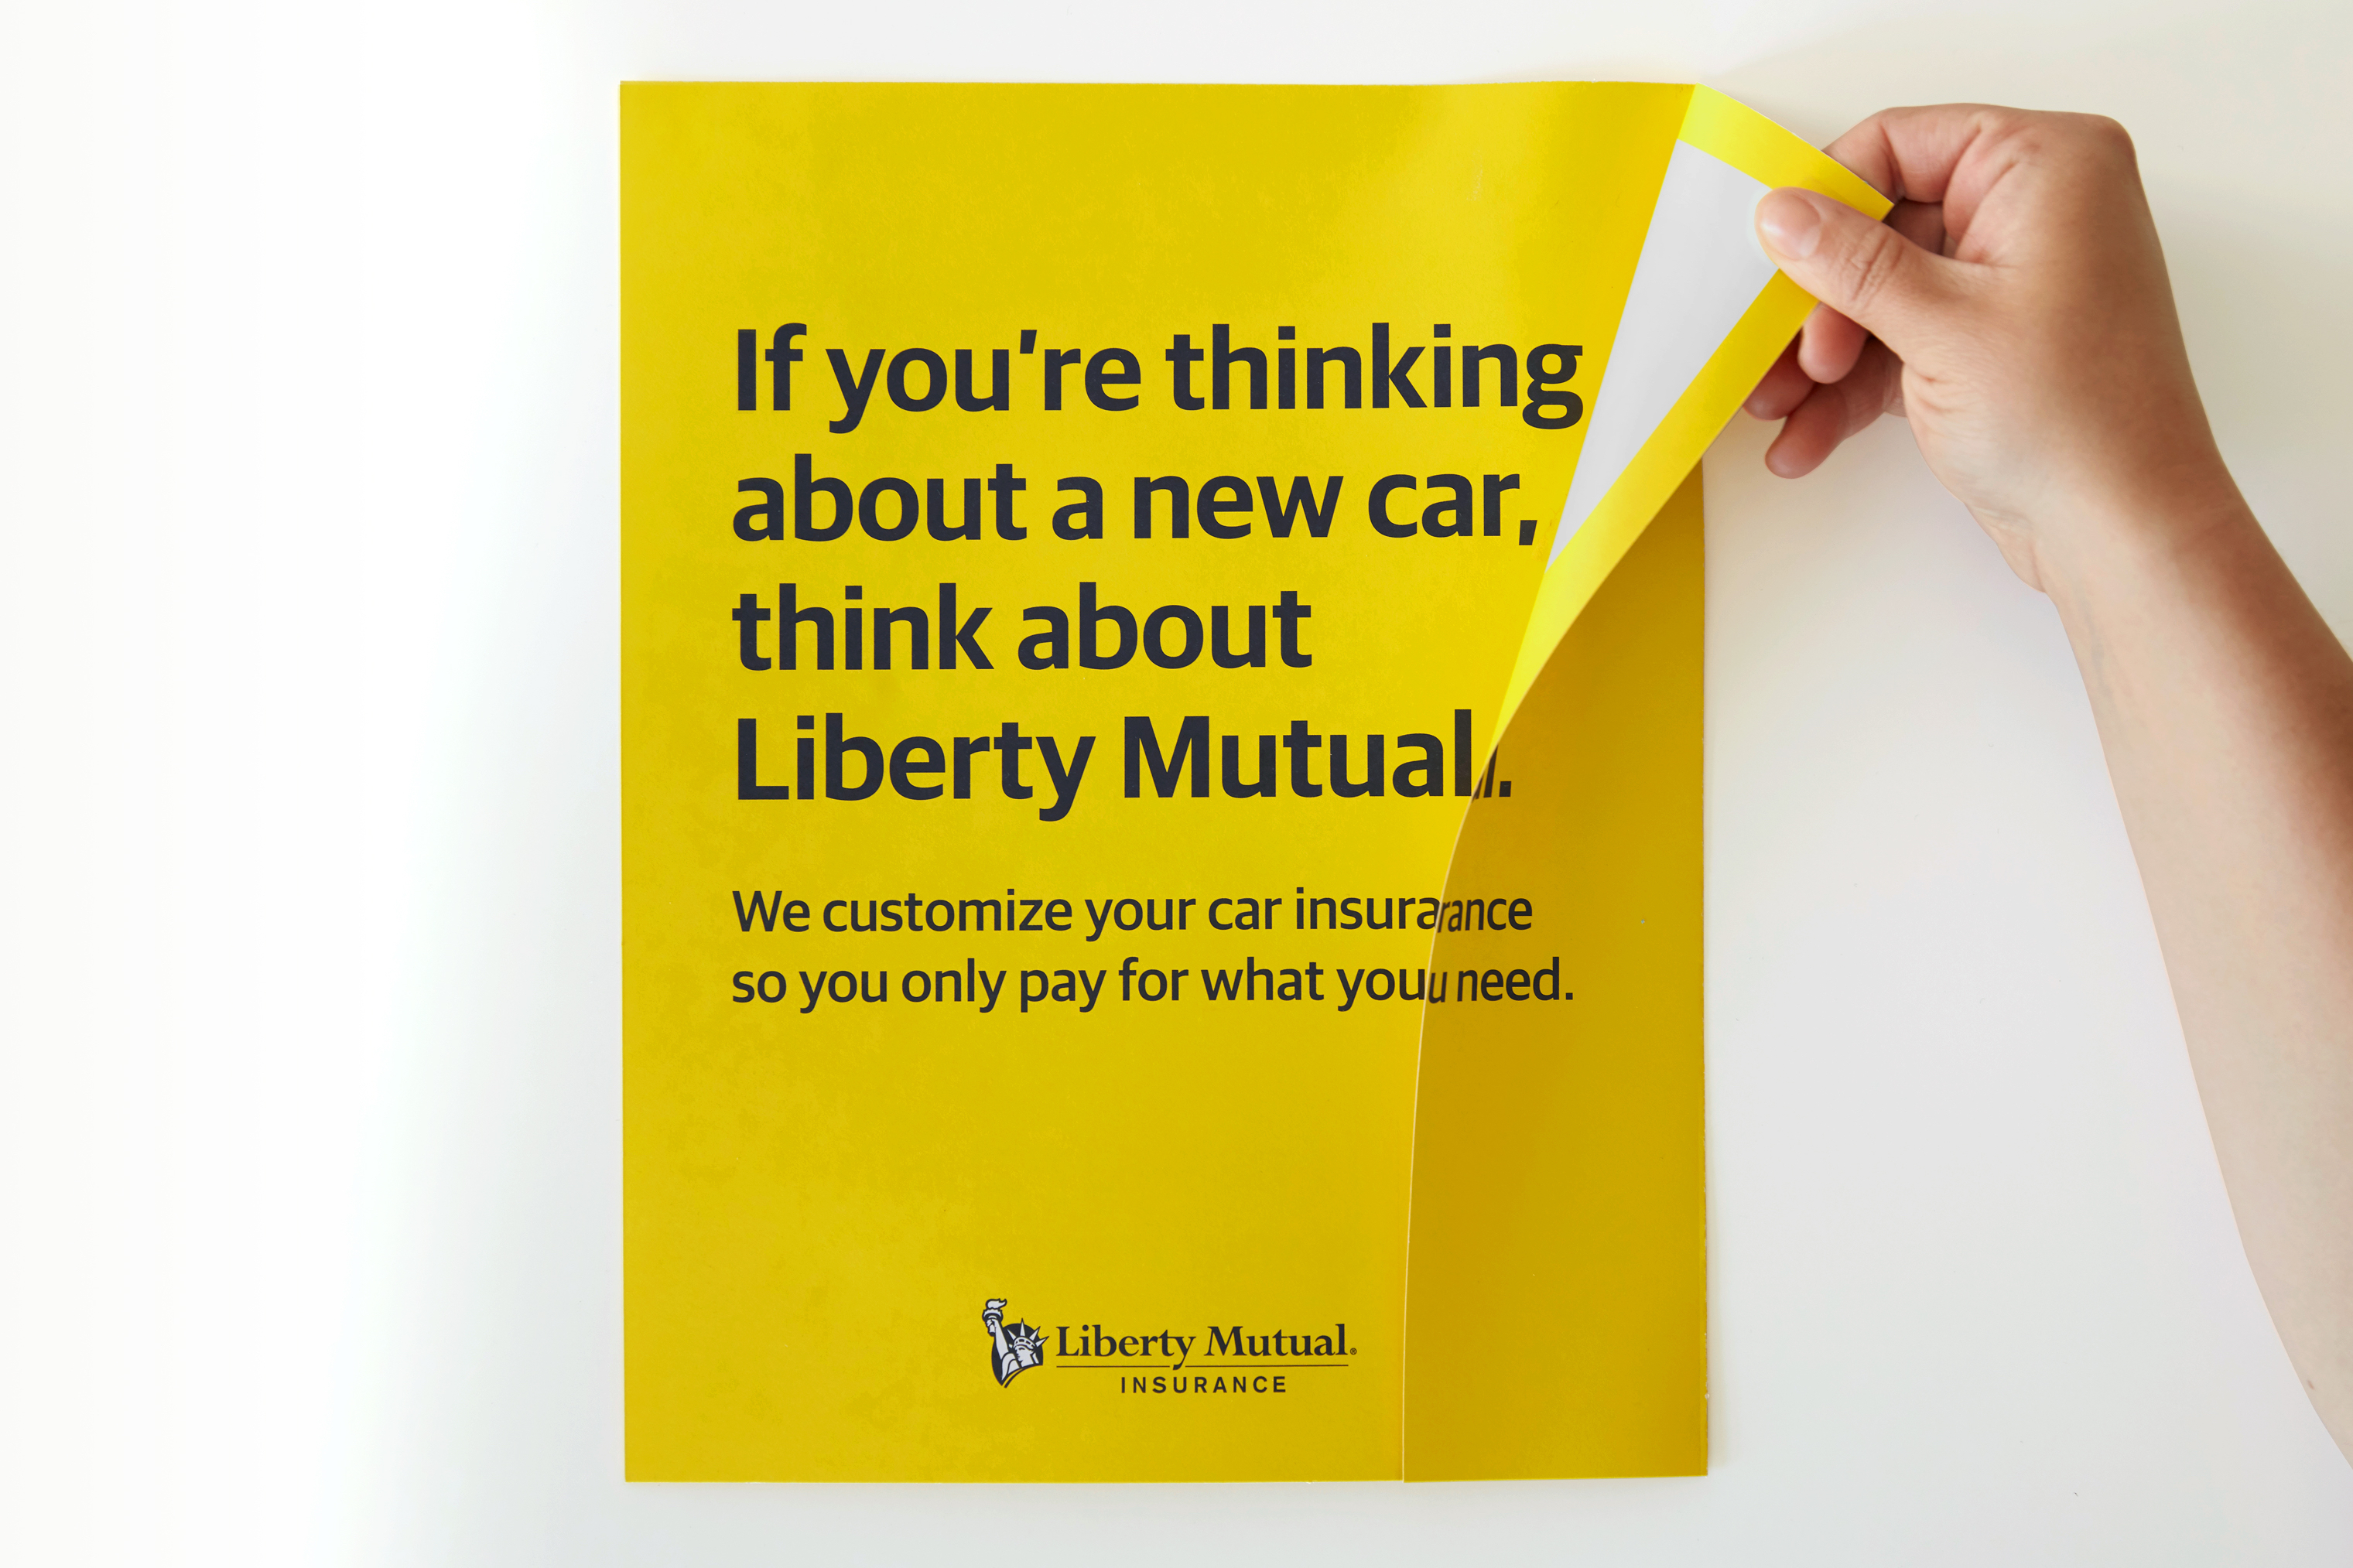 Liberty Mutual takes a page from perfume ads